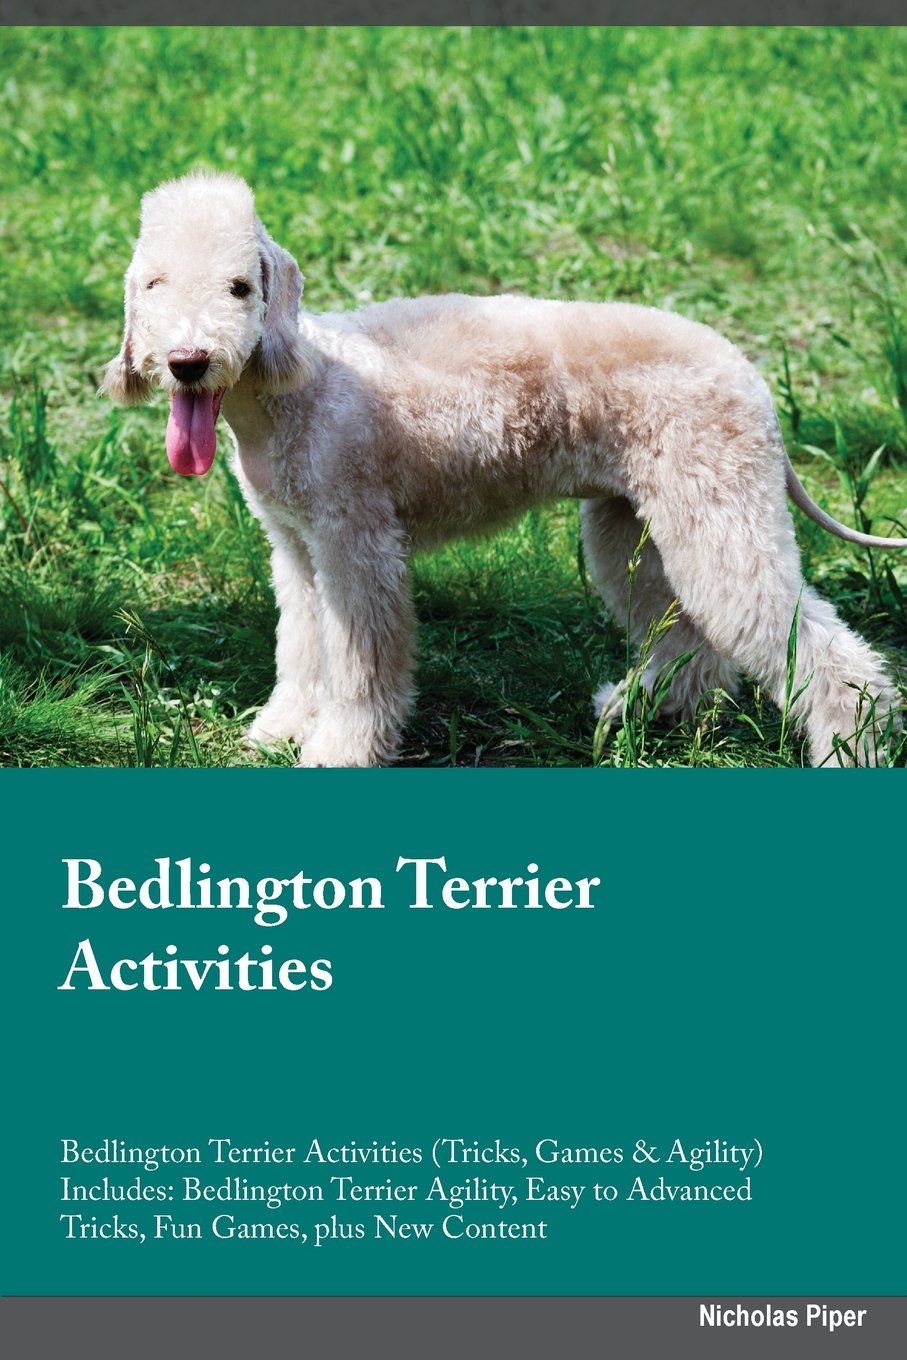 Bedlington Terrier Activities Bedlington Terrier Activities (Tricks, Games & Agility) Includes: Bedlington Terrier Agility, Easy to Advanced Tricks, Fun Games, plus New Content